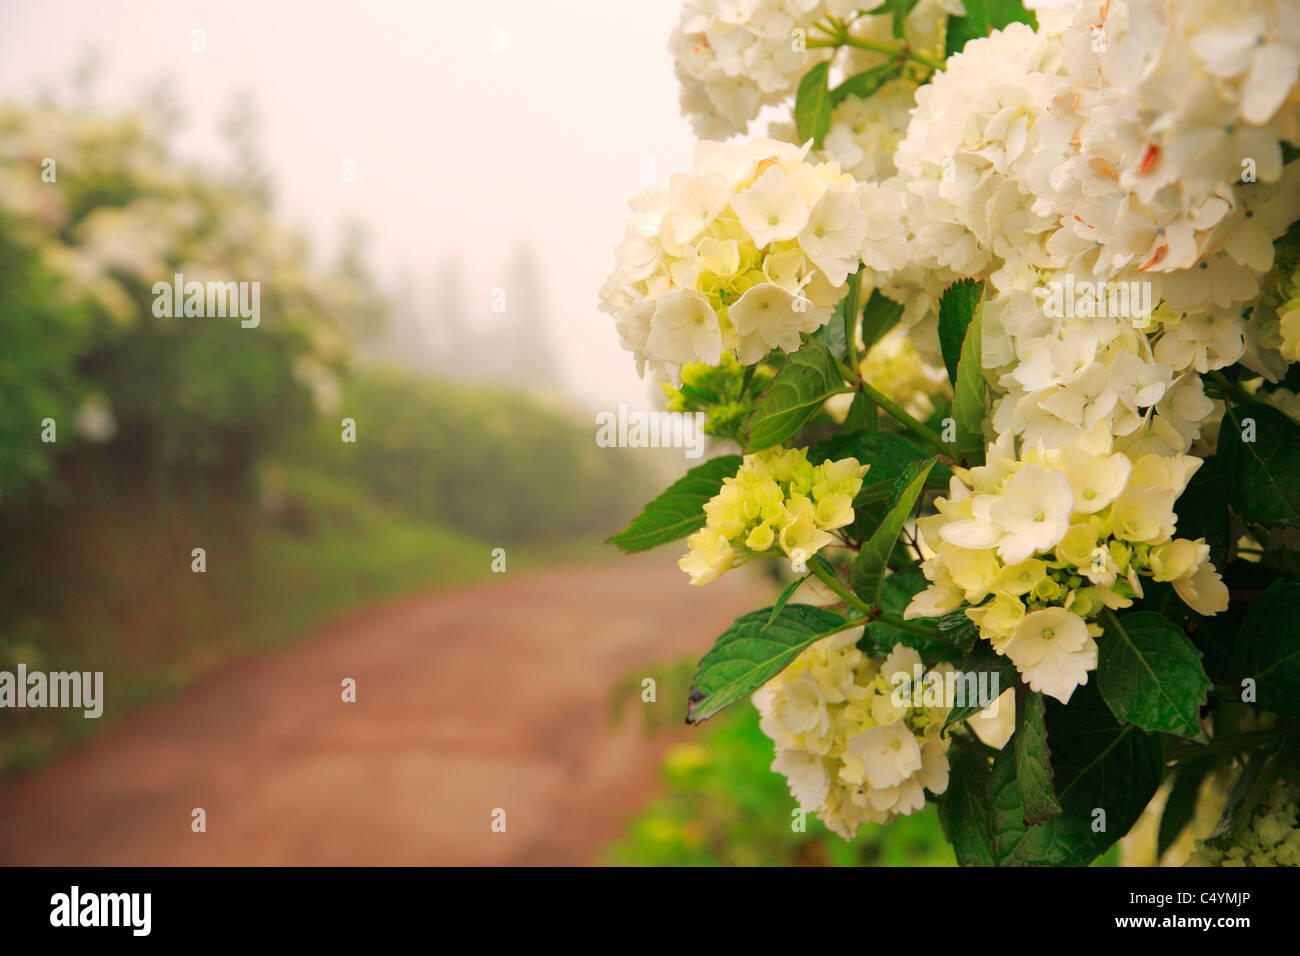 Dirt road surrounded by hydrangeas in a foggy day. Azores islands, Portugal - Stock Image